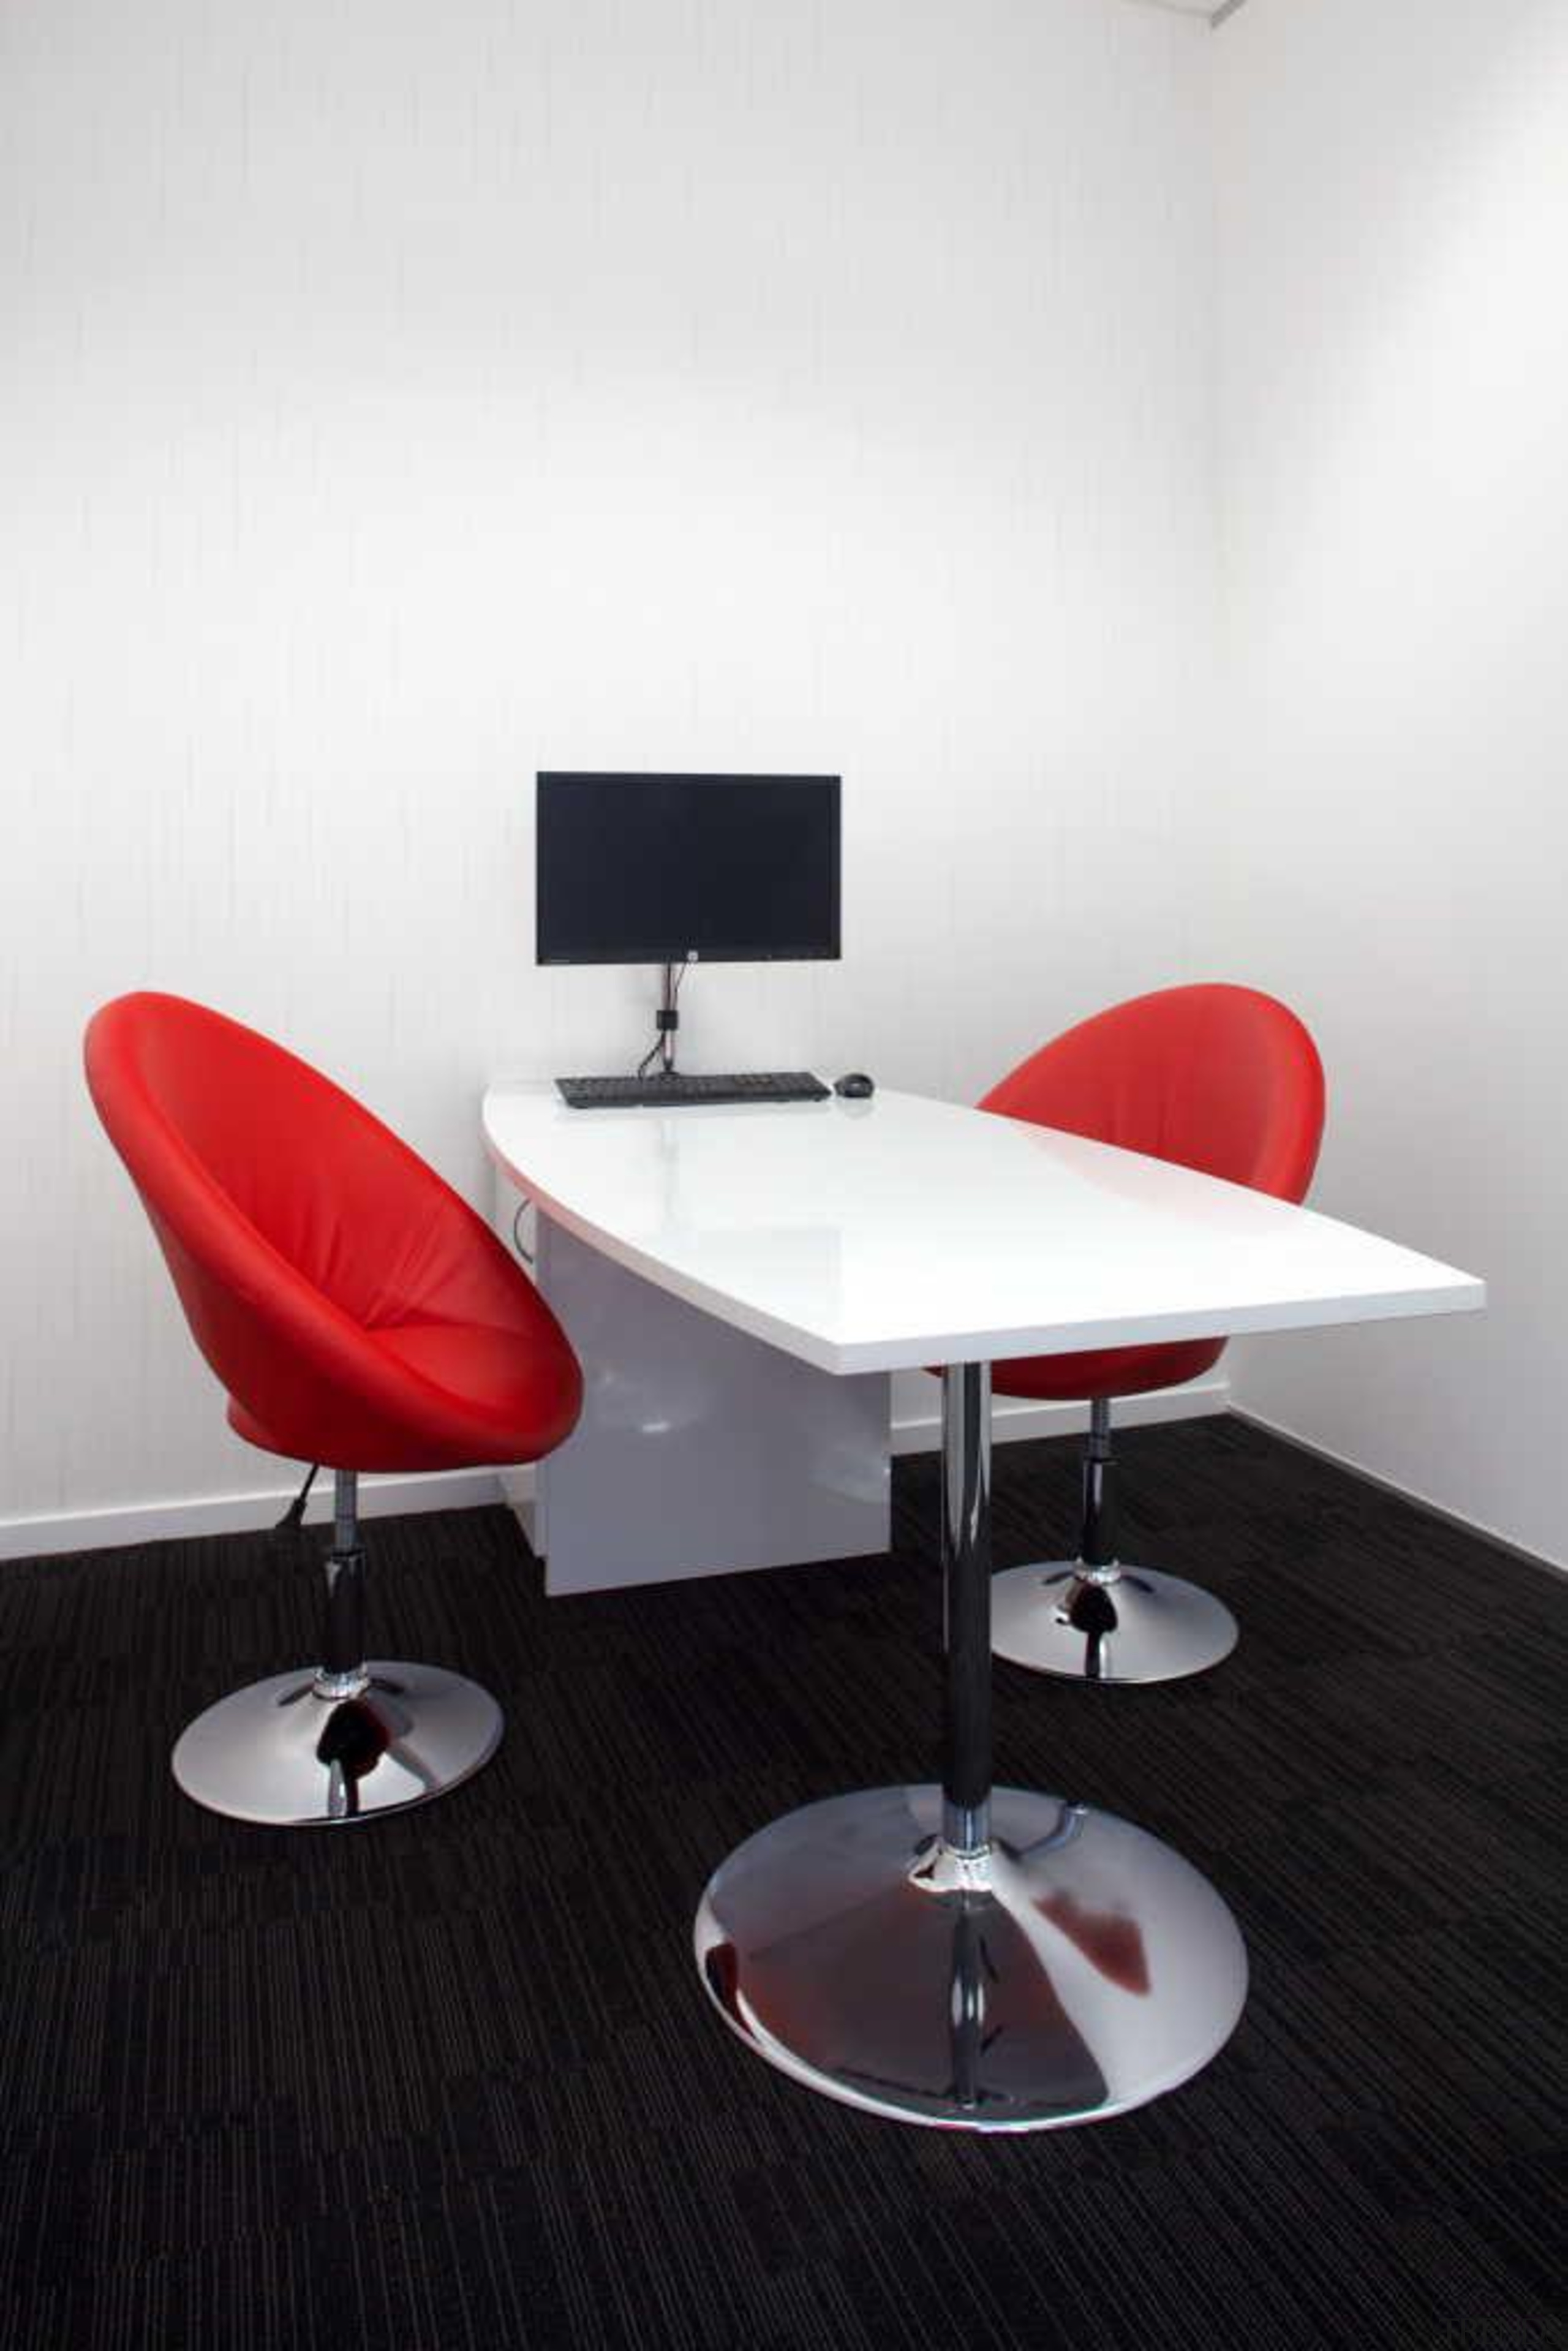 interview room at dkw personnel office designed by angle, chair, furniture, interior design, office, office chair, product, product design, table, white, black